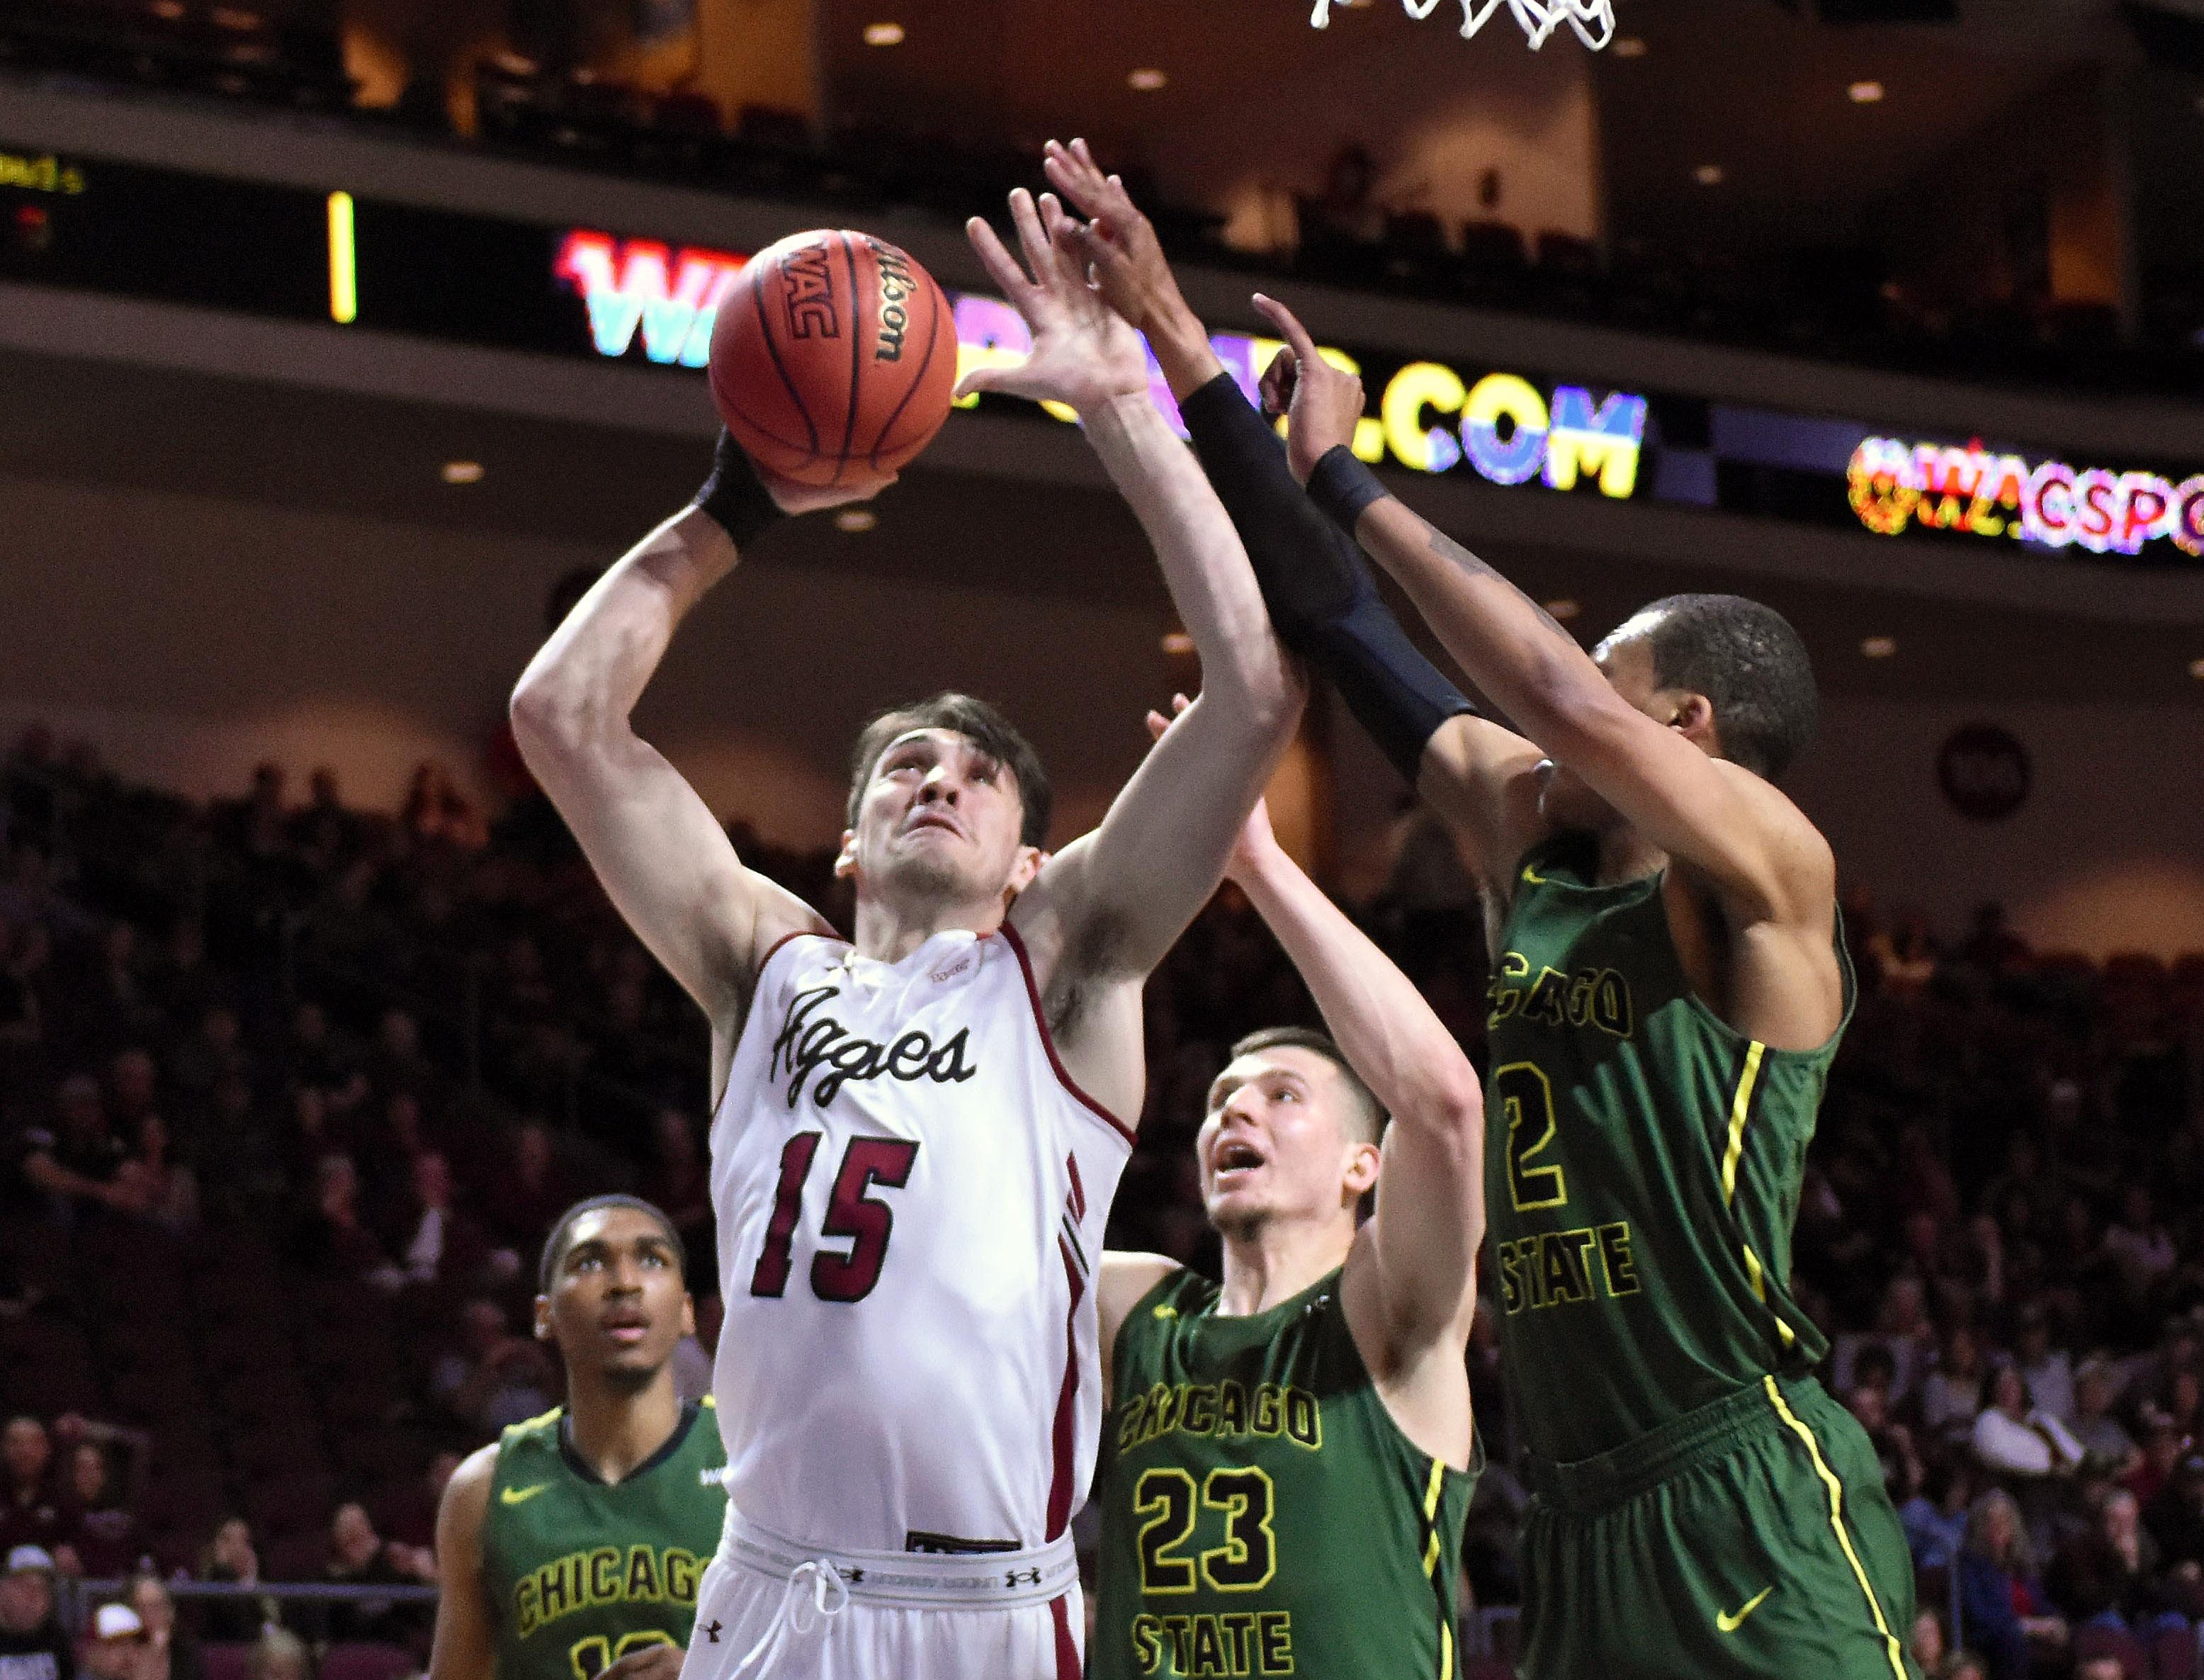 New Mexico State's Ivan Aurrecoechea muscles in a layup against the Chicago State defense in the first half a WAC Tournament first-round game Thursday, March 14, 2019, at the Orleans Arena in Las Vegas, Nevada.